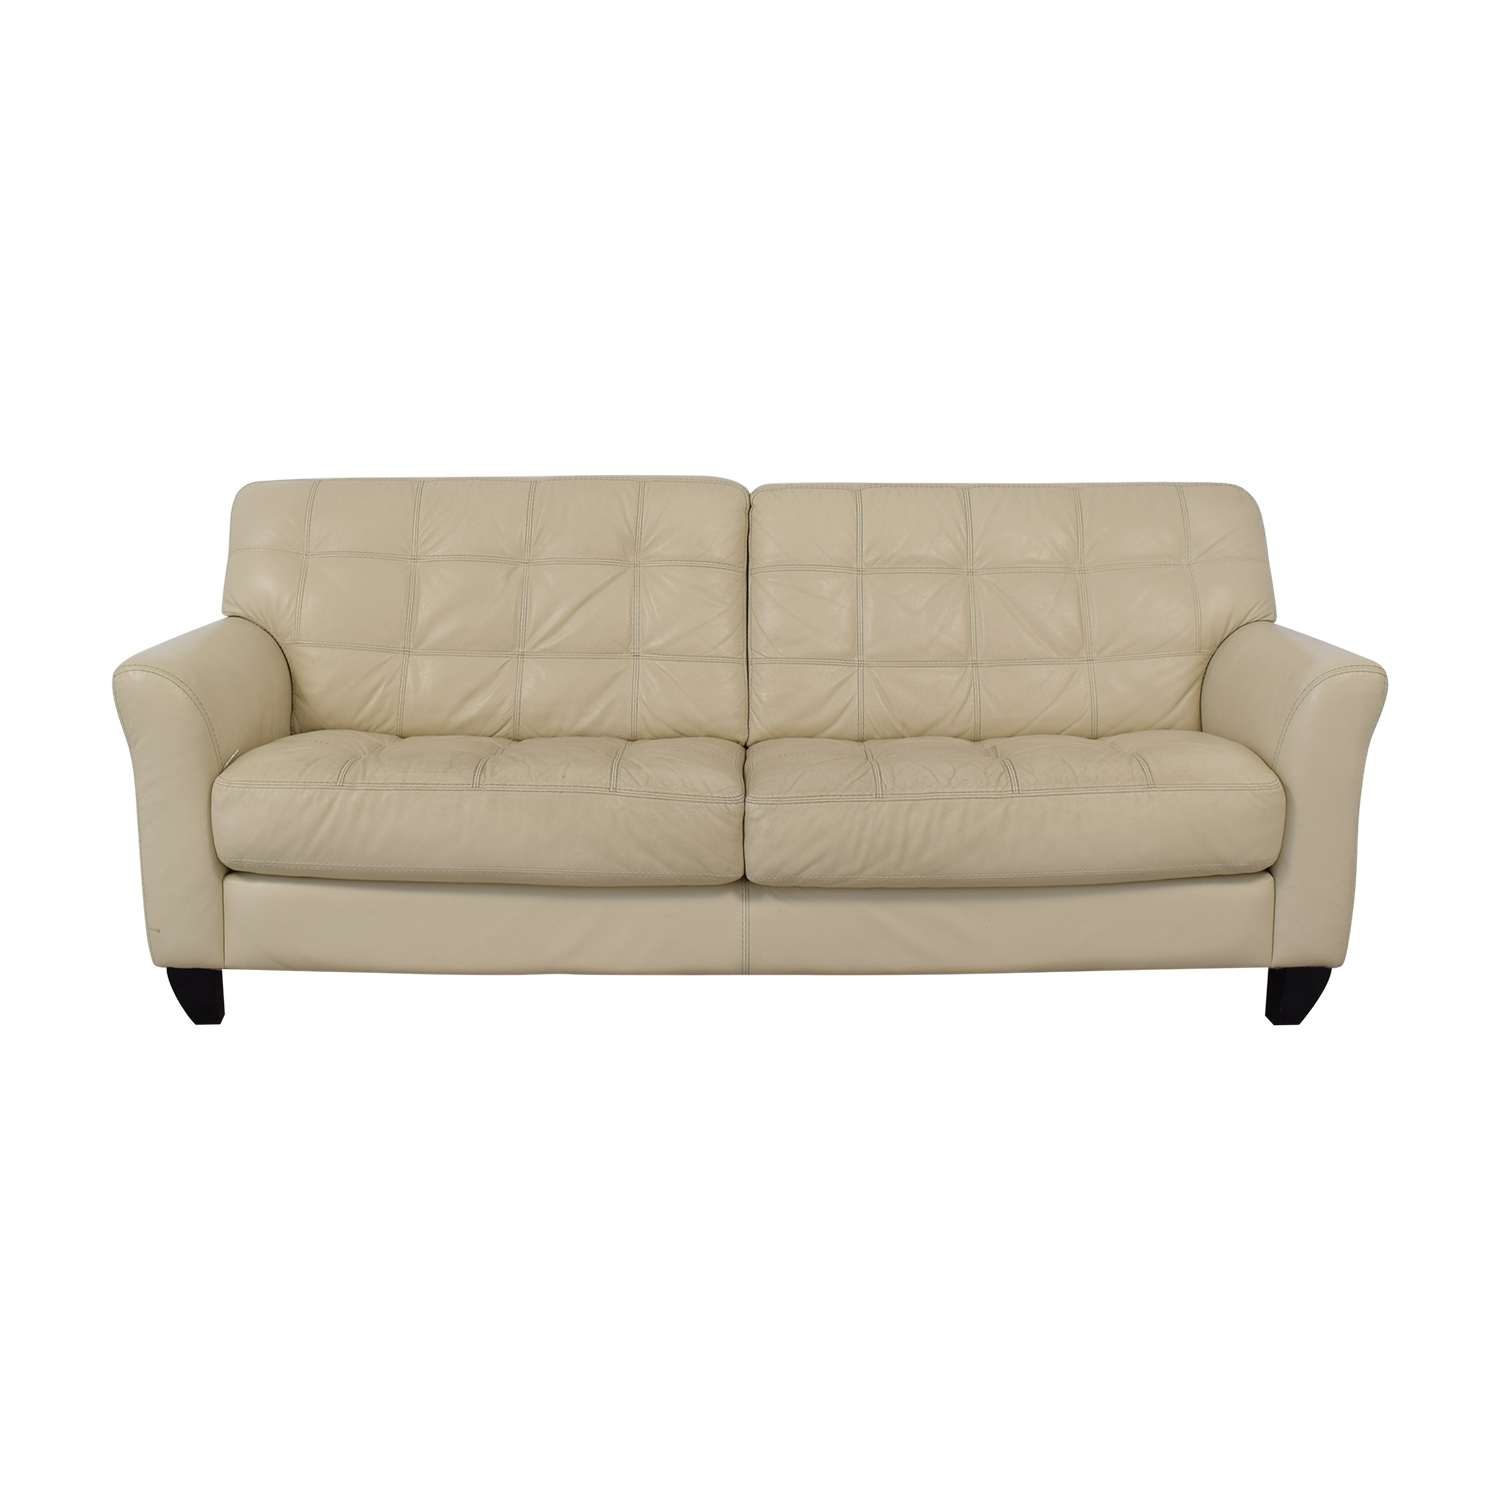 Chateau d'Ax Chateau d'Ax Milan White Leather Couch nj